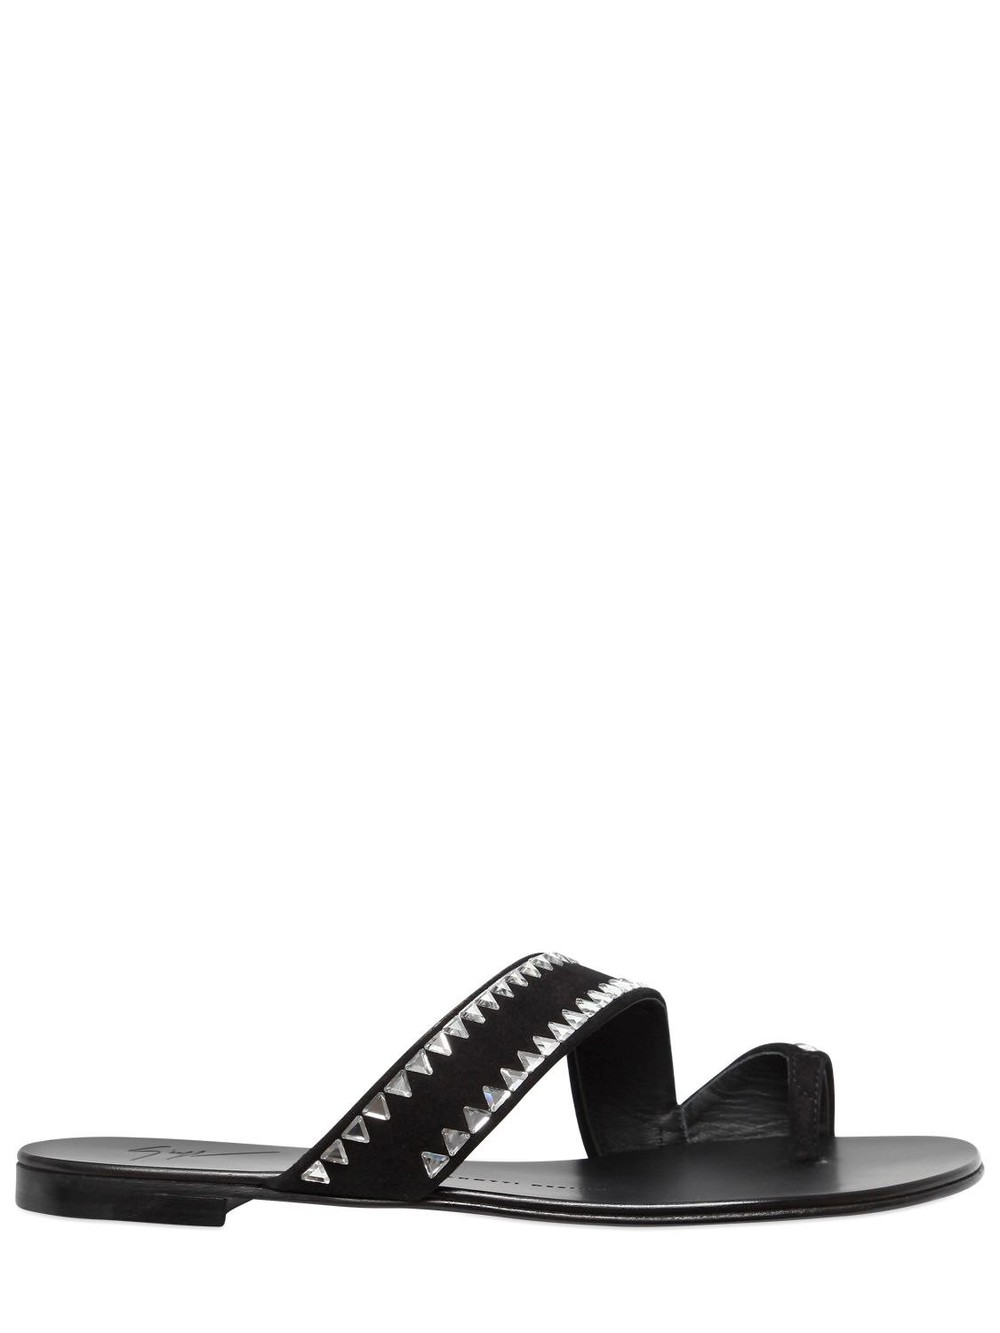 GIUSEPPE ZANOTTI DESIGN 10mm Swarovski Suede Sandals in black